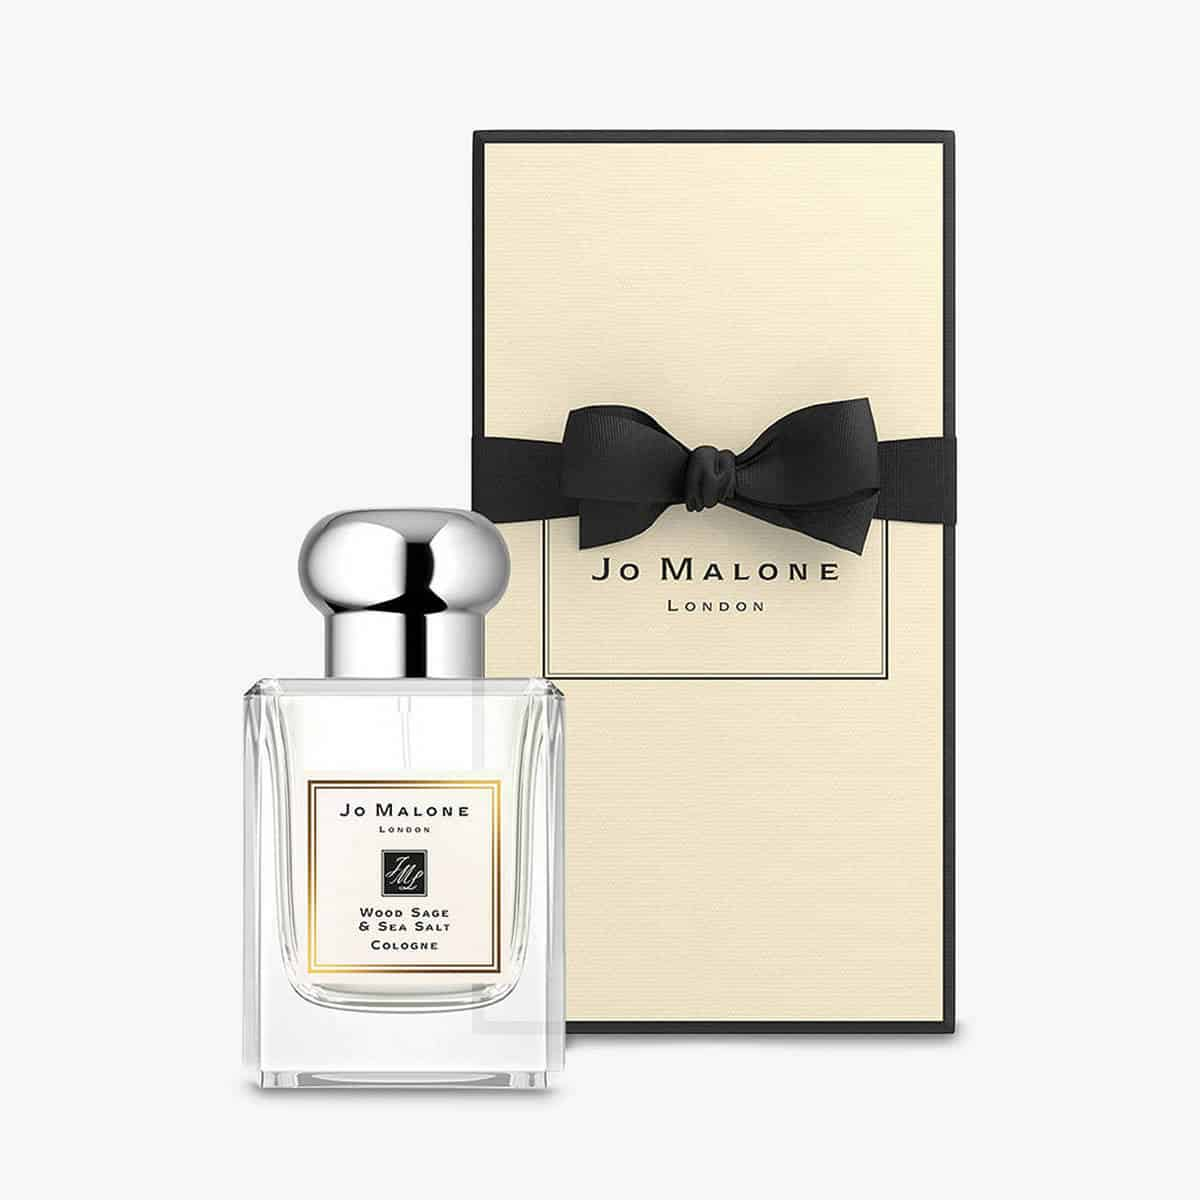 Wood Sage and Sea Salt Cologne by Jo Malone.